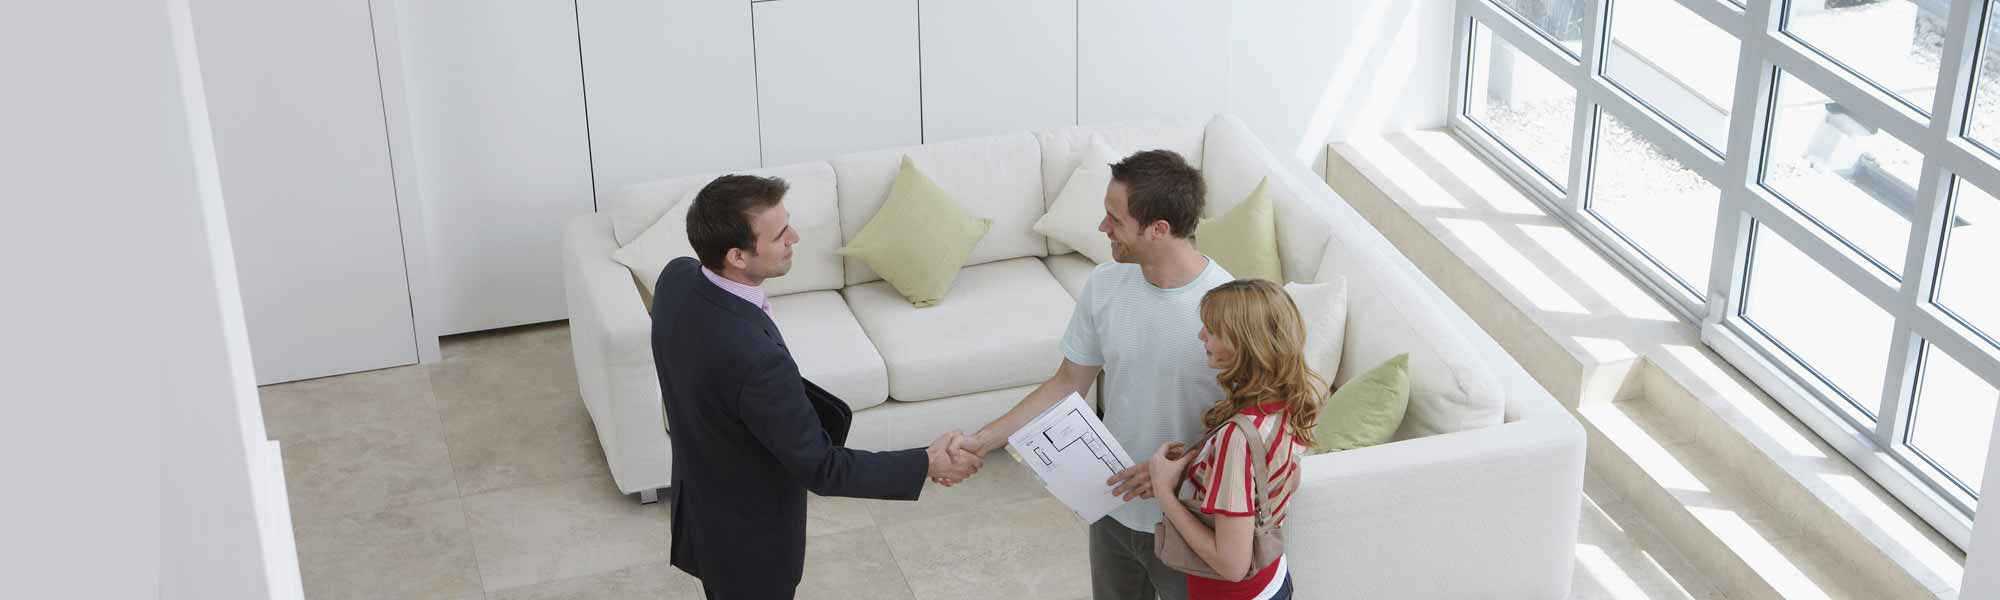 Get started with property management